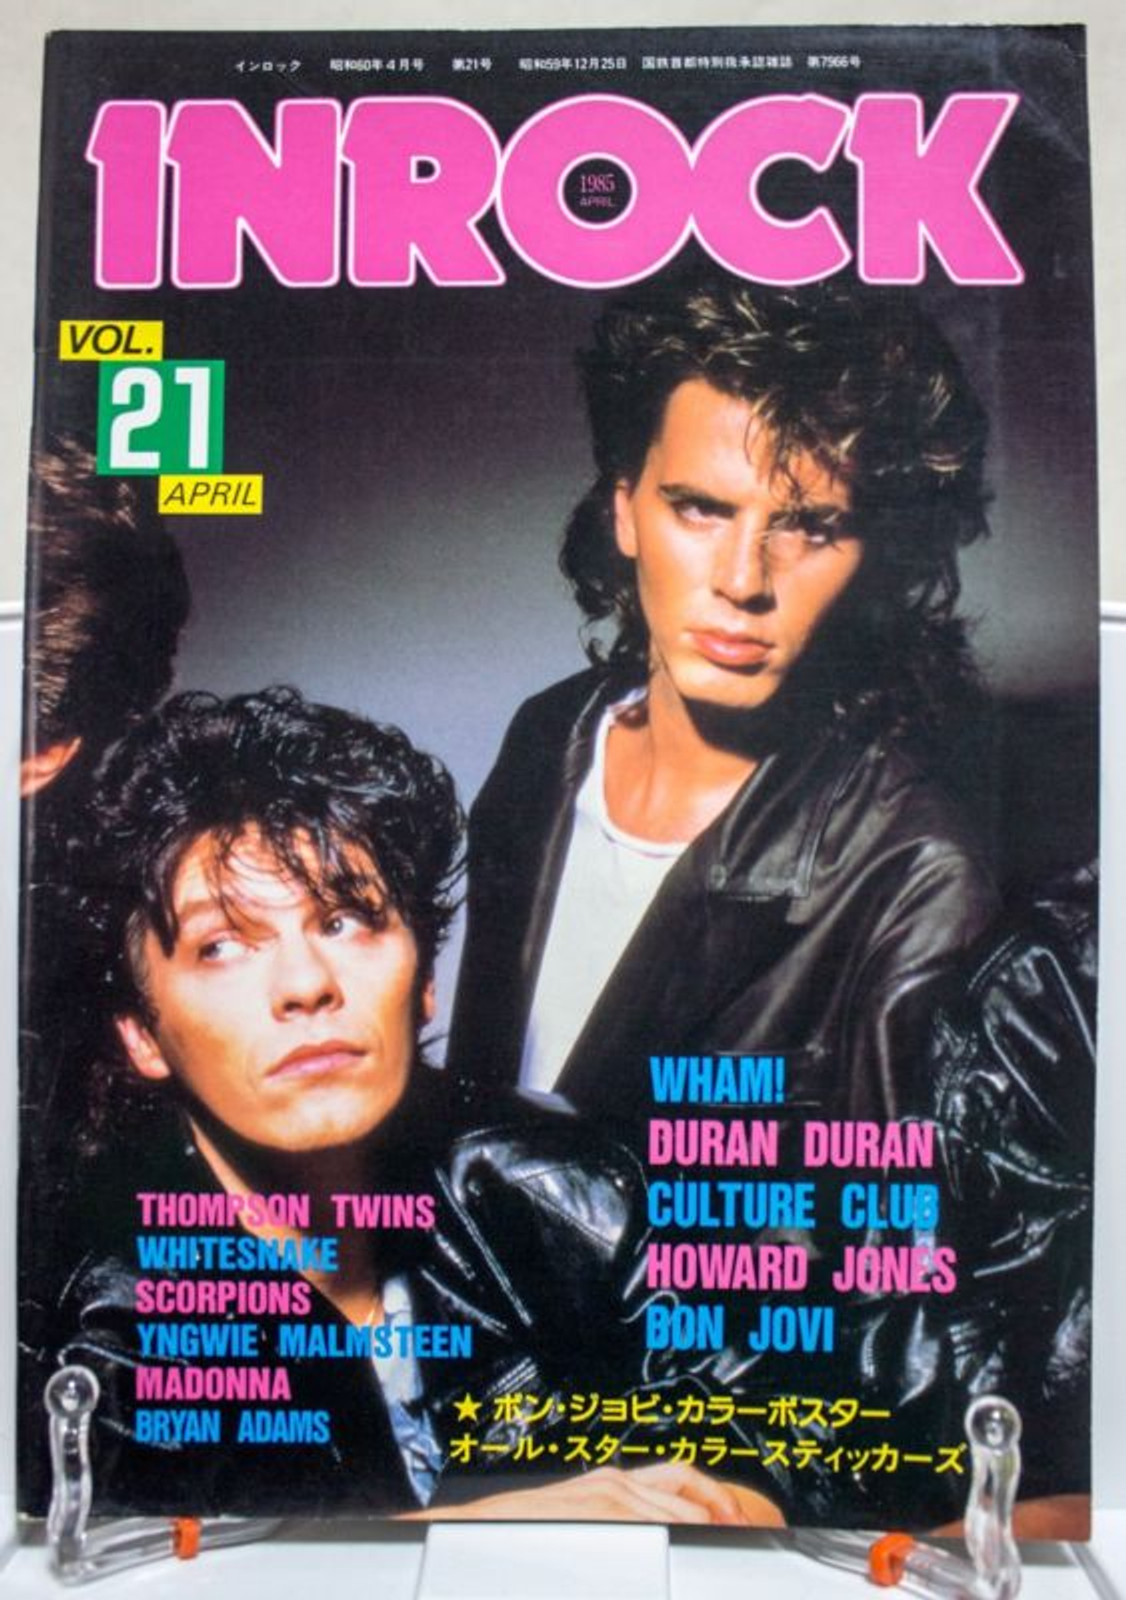 INROCK Apr/1985 Vol.21 Japanese Music Magazine WHAM!/CULTURE CLUB/BON JOVI